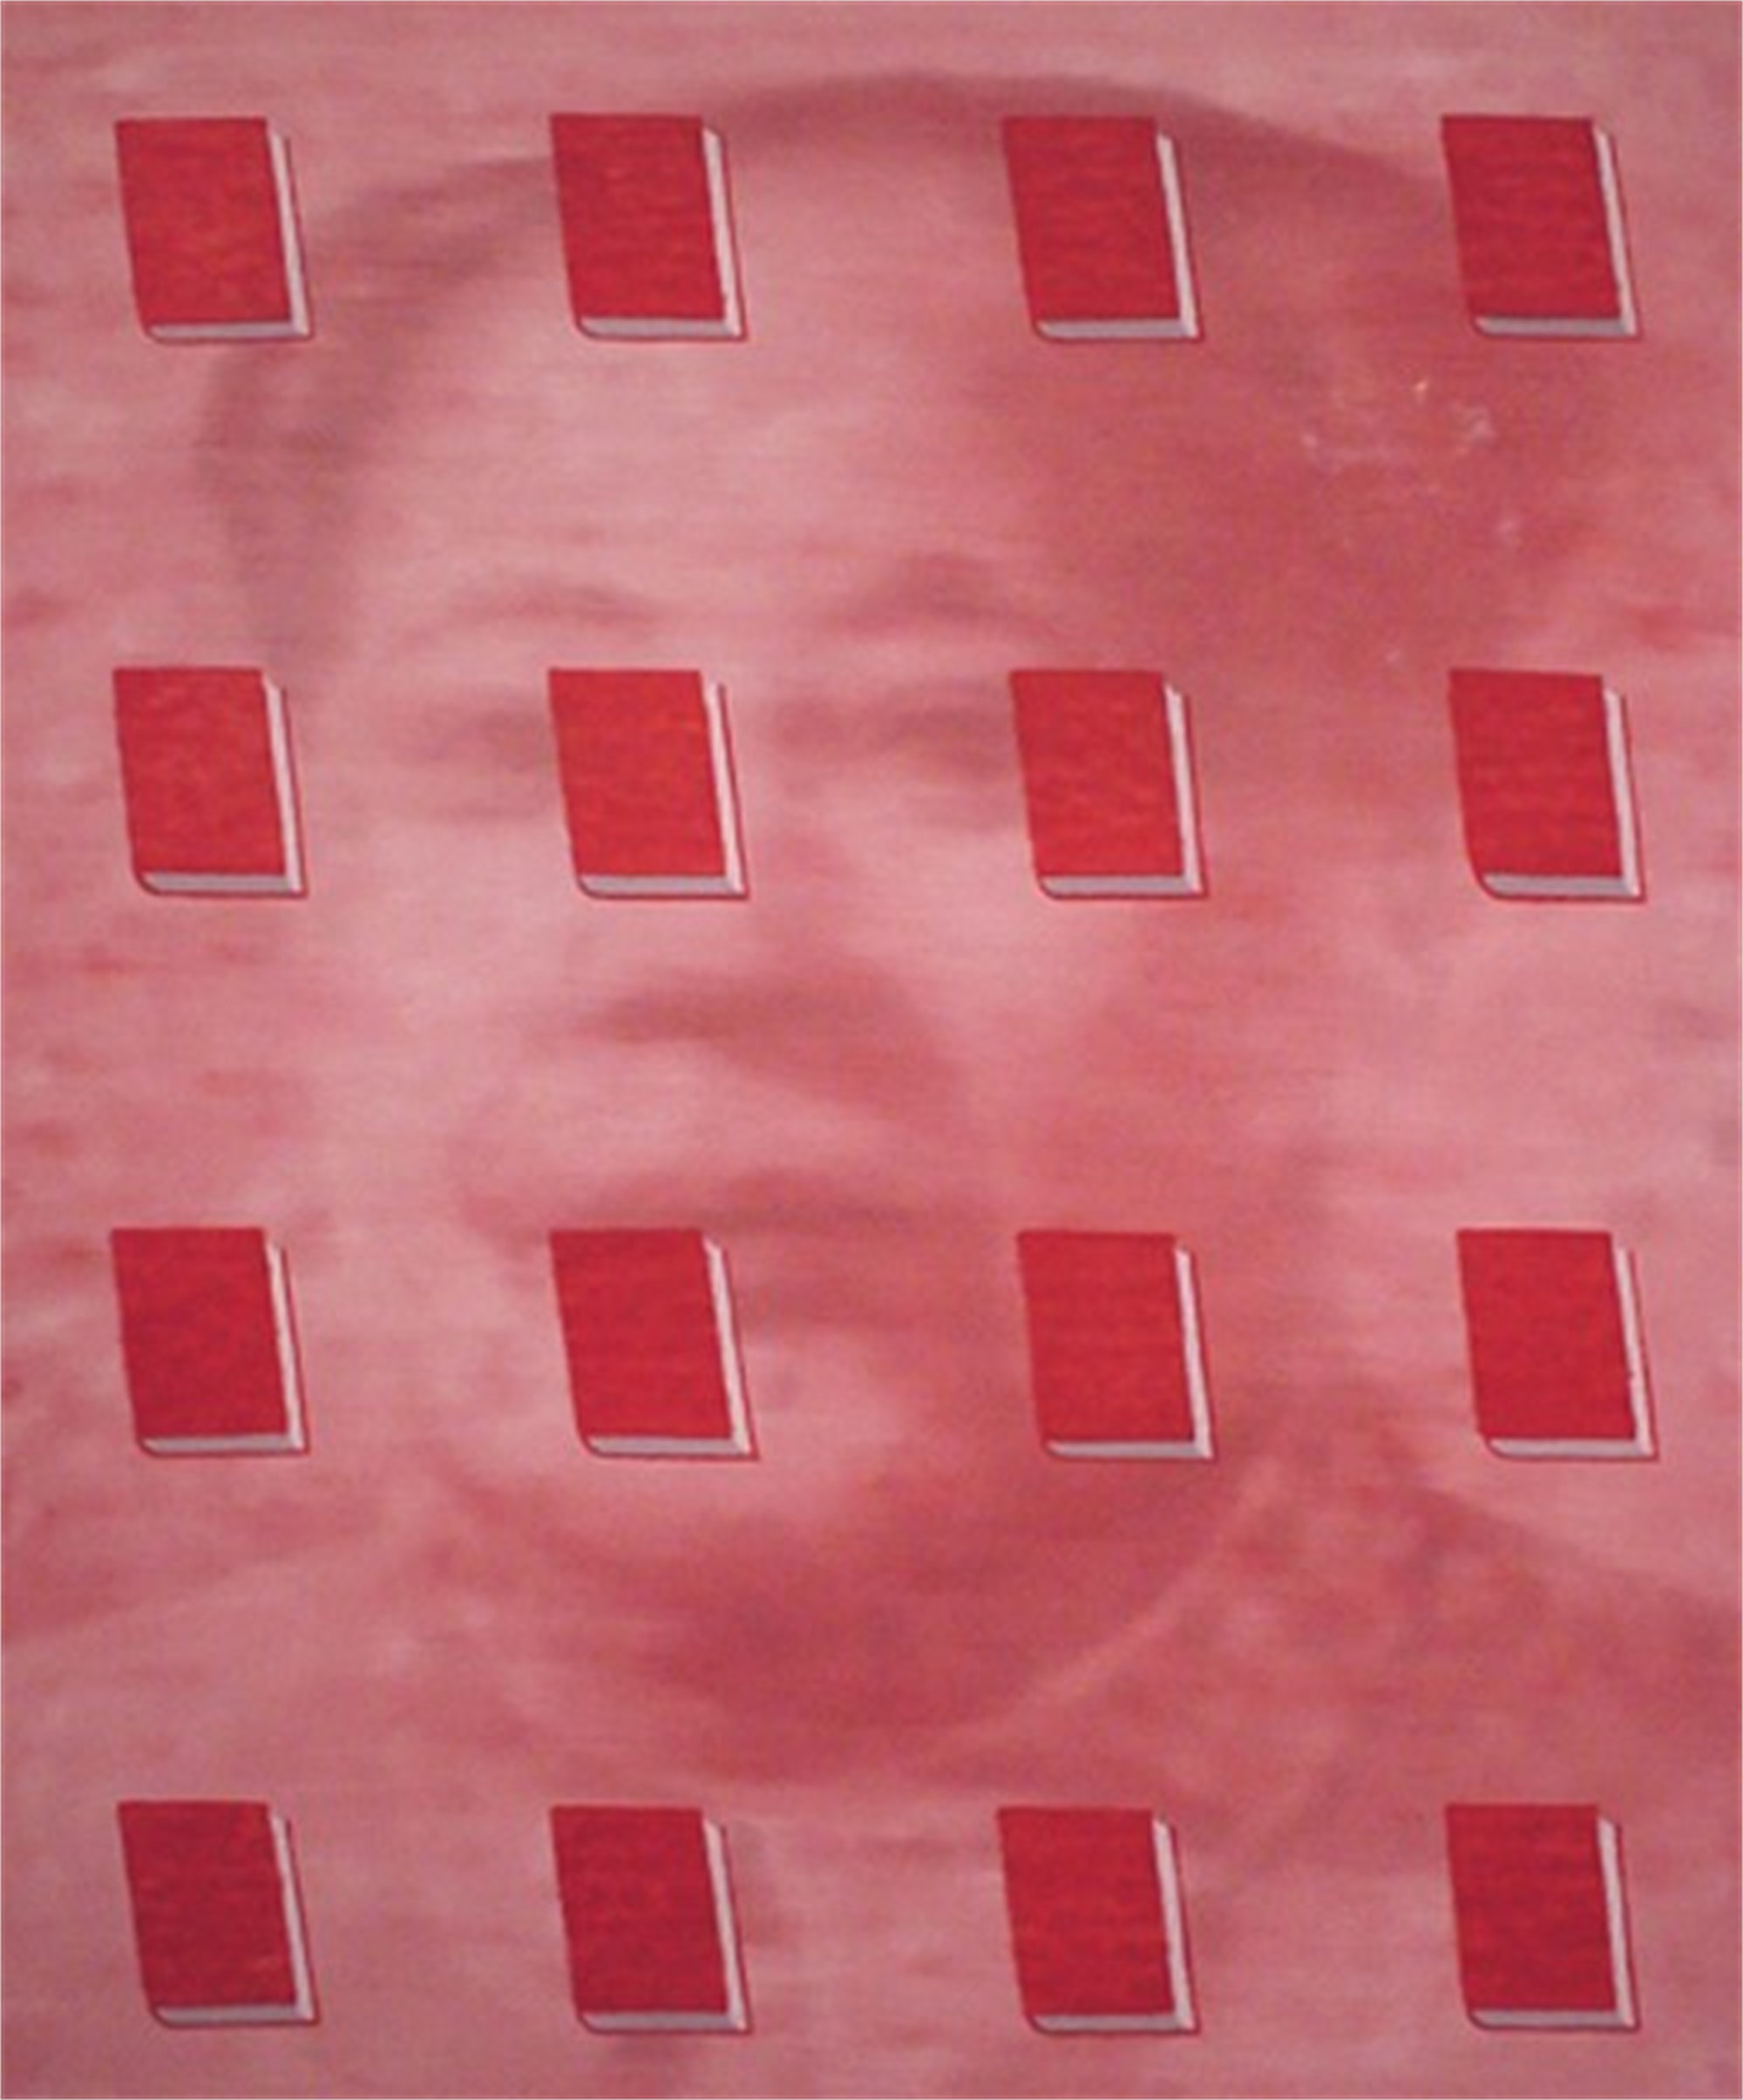 Mao #2 by Contemporary Chinese Art